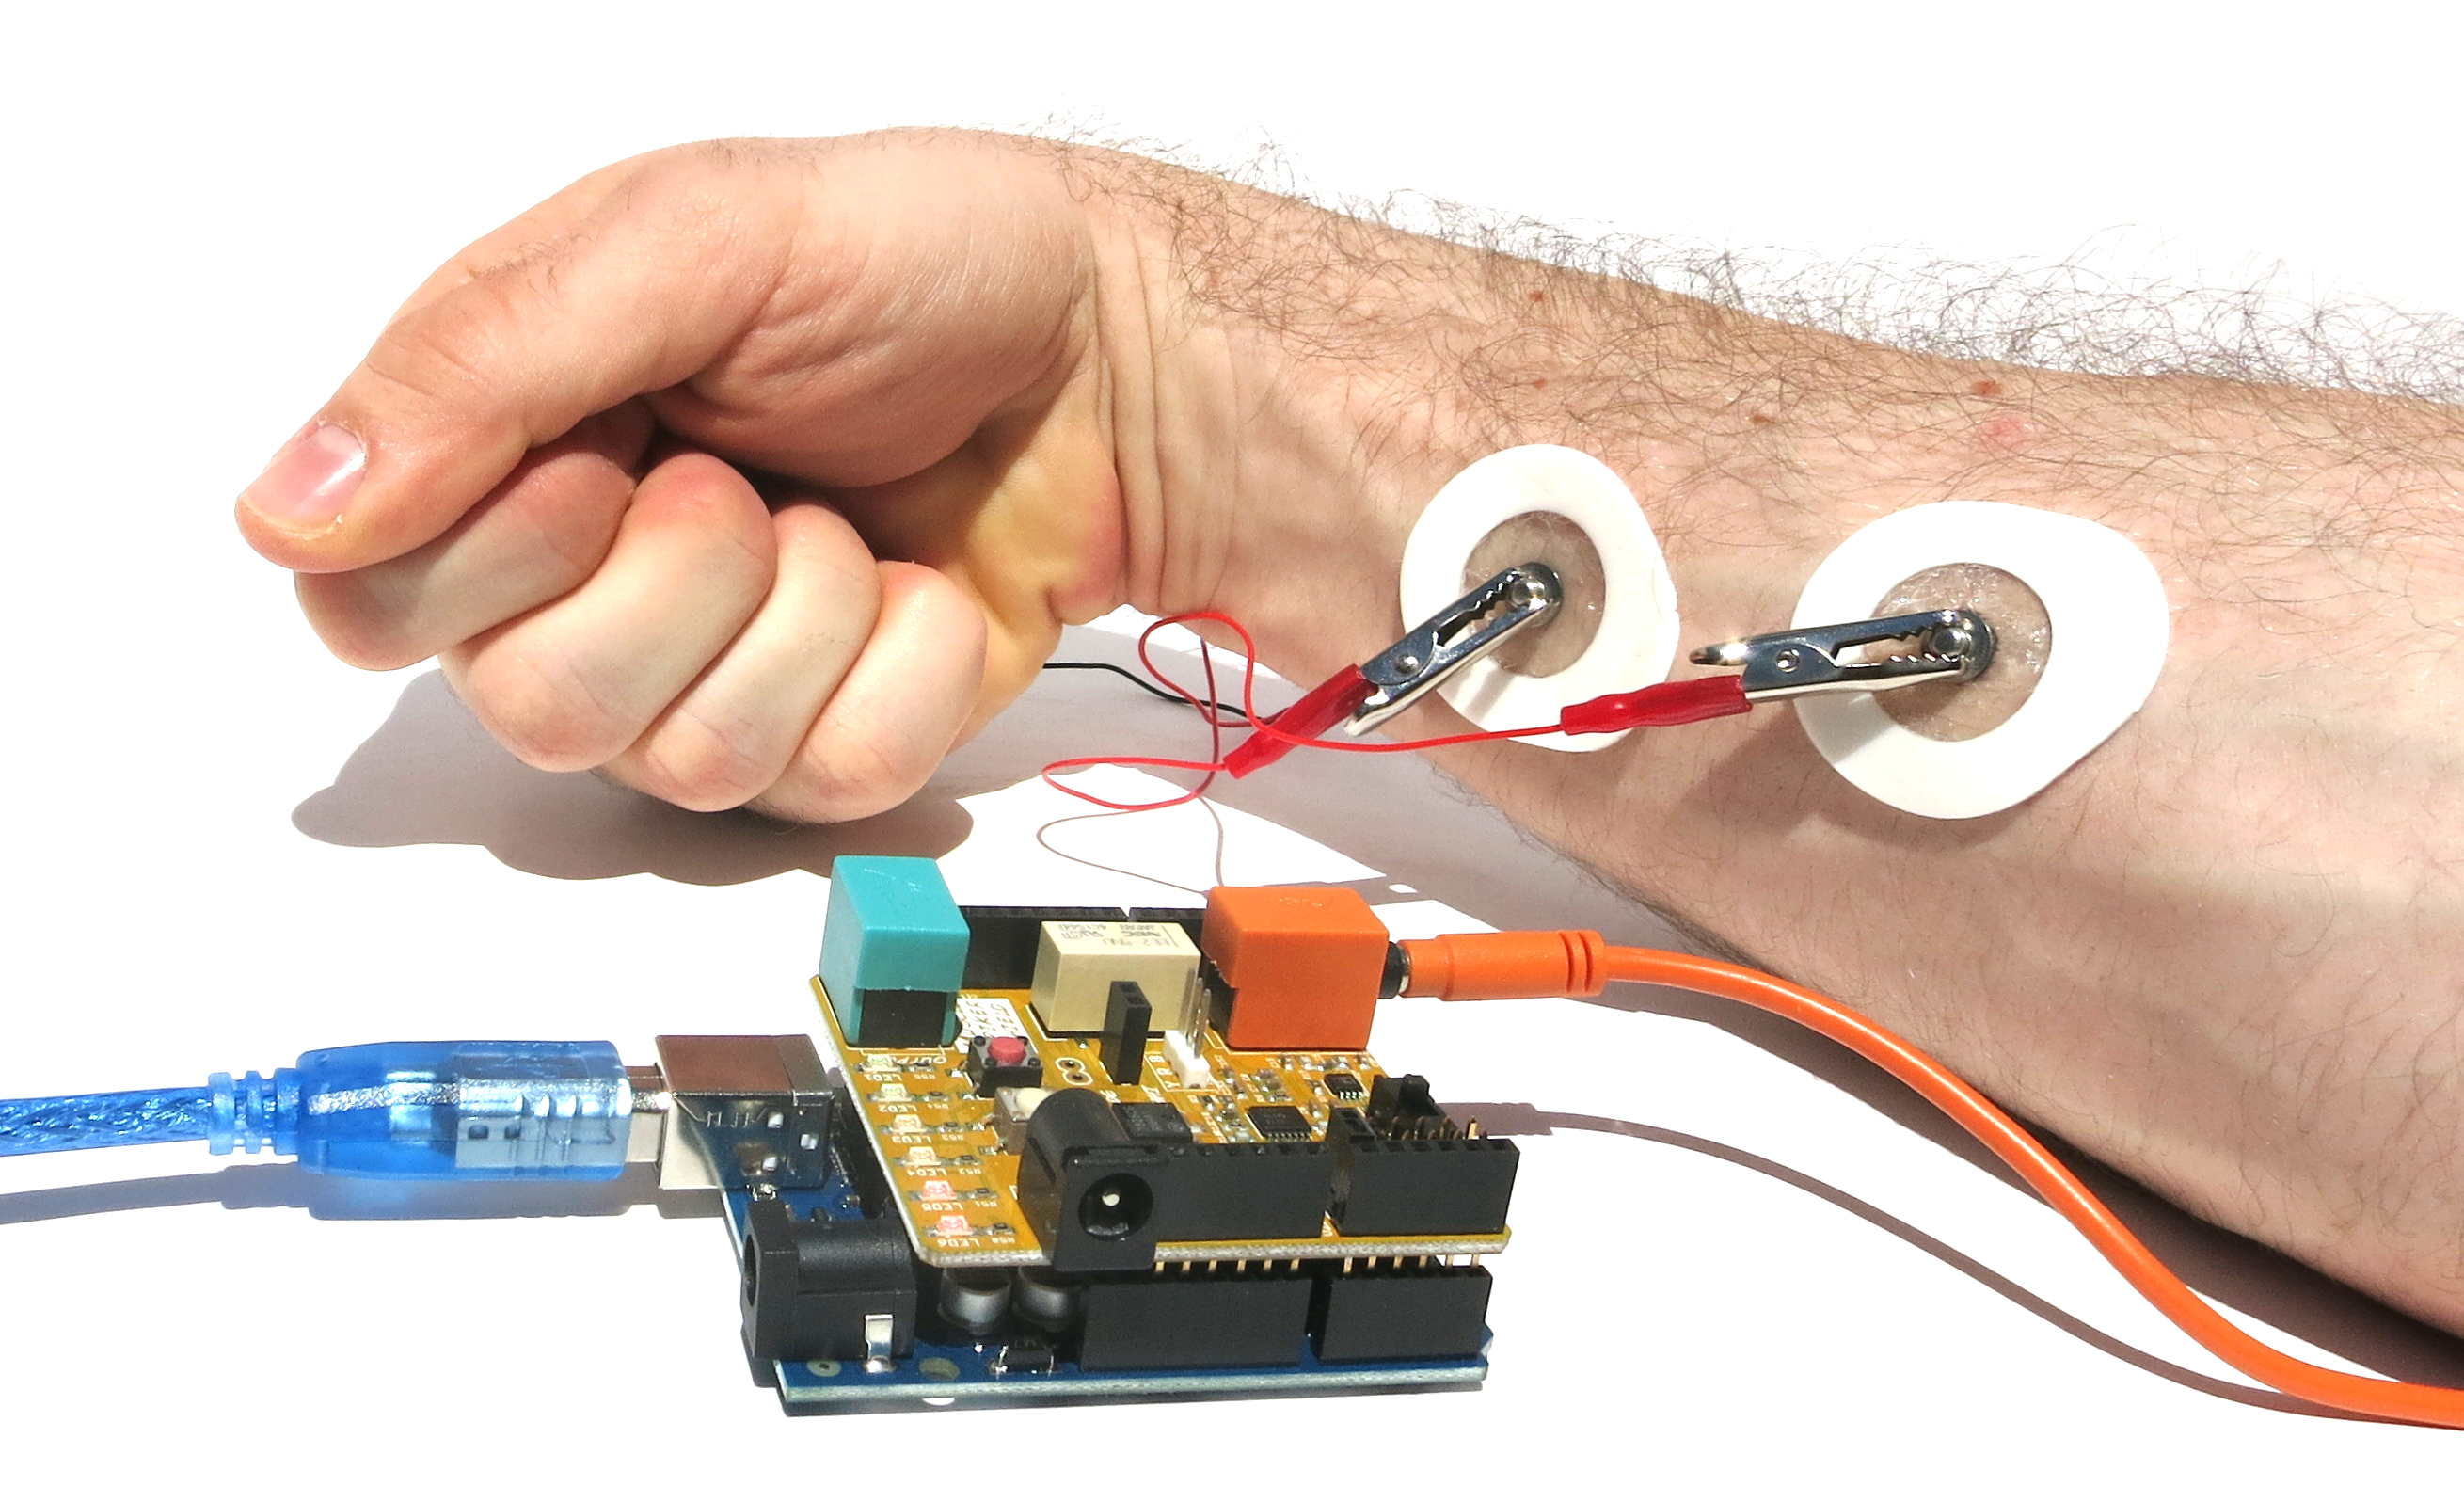 Experiment Control Machines With Your Brain Wiring A Light Fixture Red Black And White Wires Hook The Two Clips Onto Arm Place One On Back Of Wrist You Can Also Plug In Speaker To Hear Muscle Activity